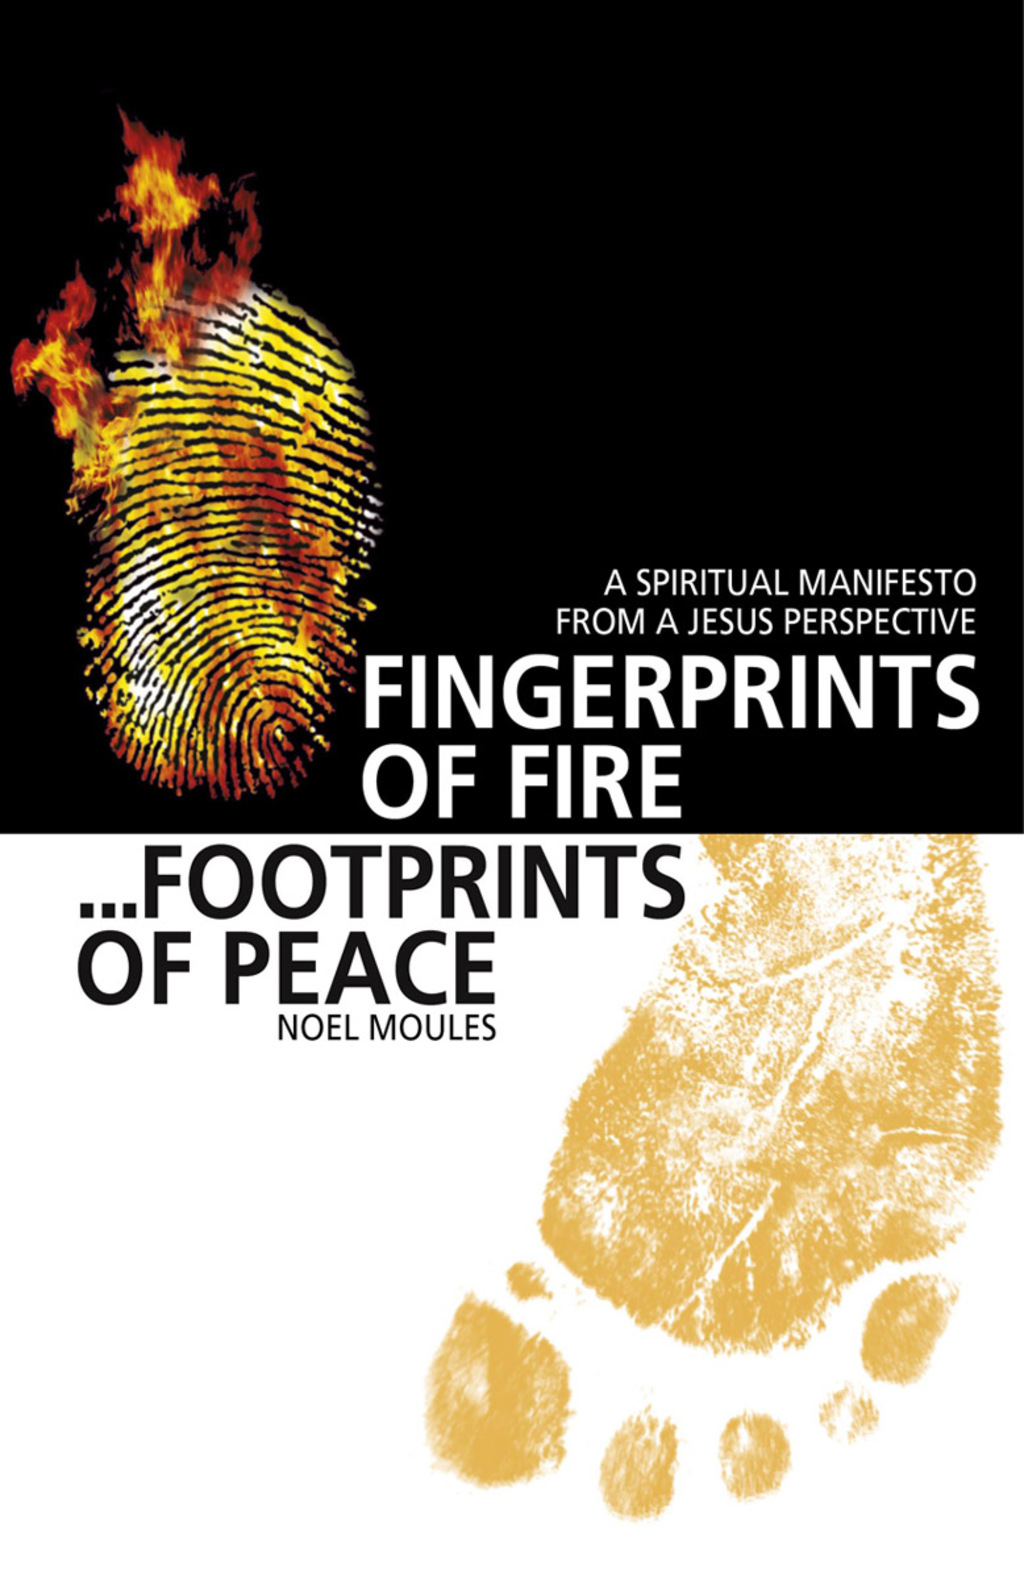 Fingerprints of Fire, Footprints of Peace: A Spiritual Manifesto from a Jesus Perspective (ebook) eBooks